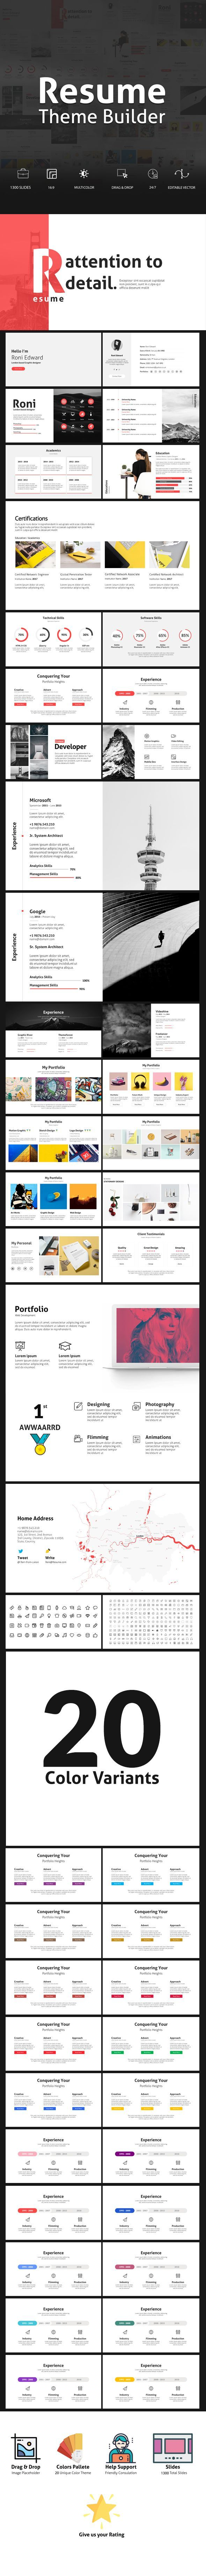 Resume Theme Builder  Minimal Powerpoint Template  Presentation